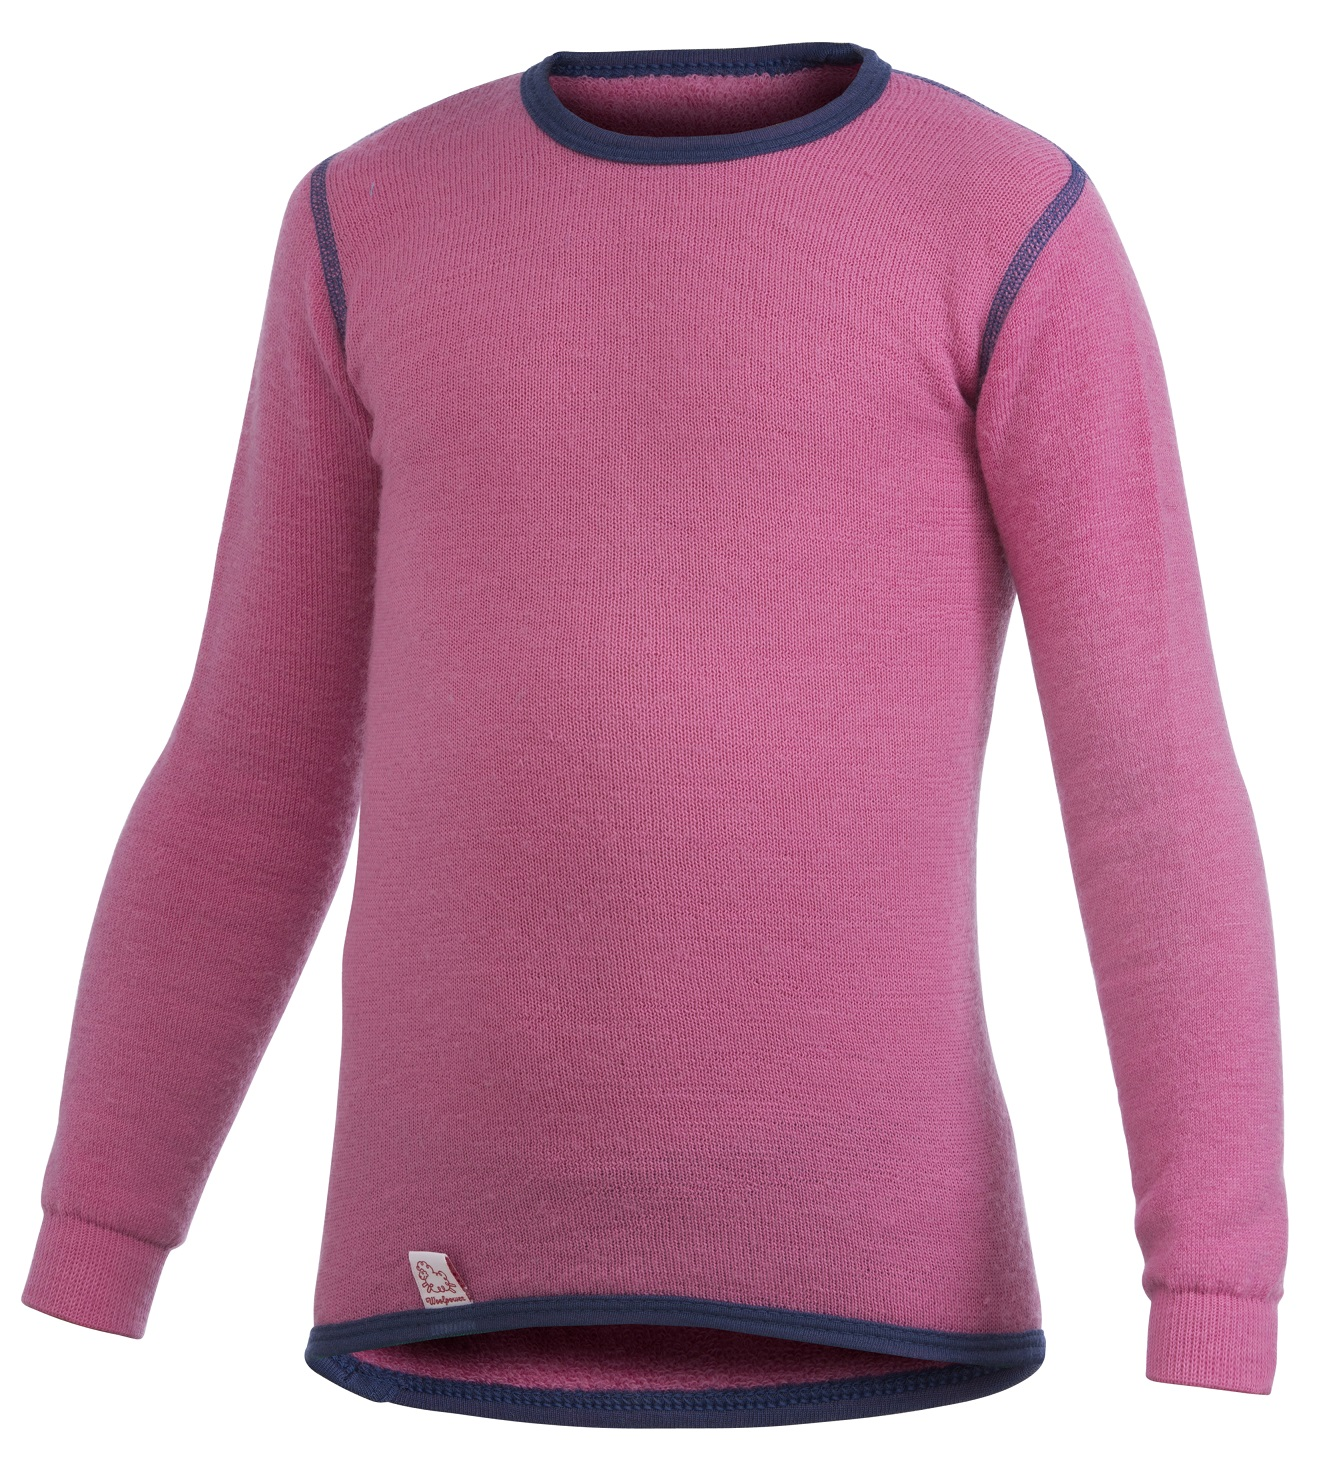 "Woolpower ""200 Kids Crewneck"" - sea star rose"